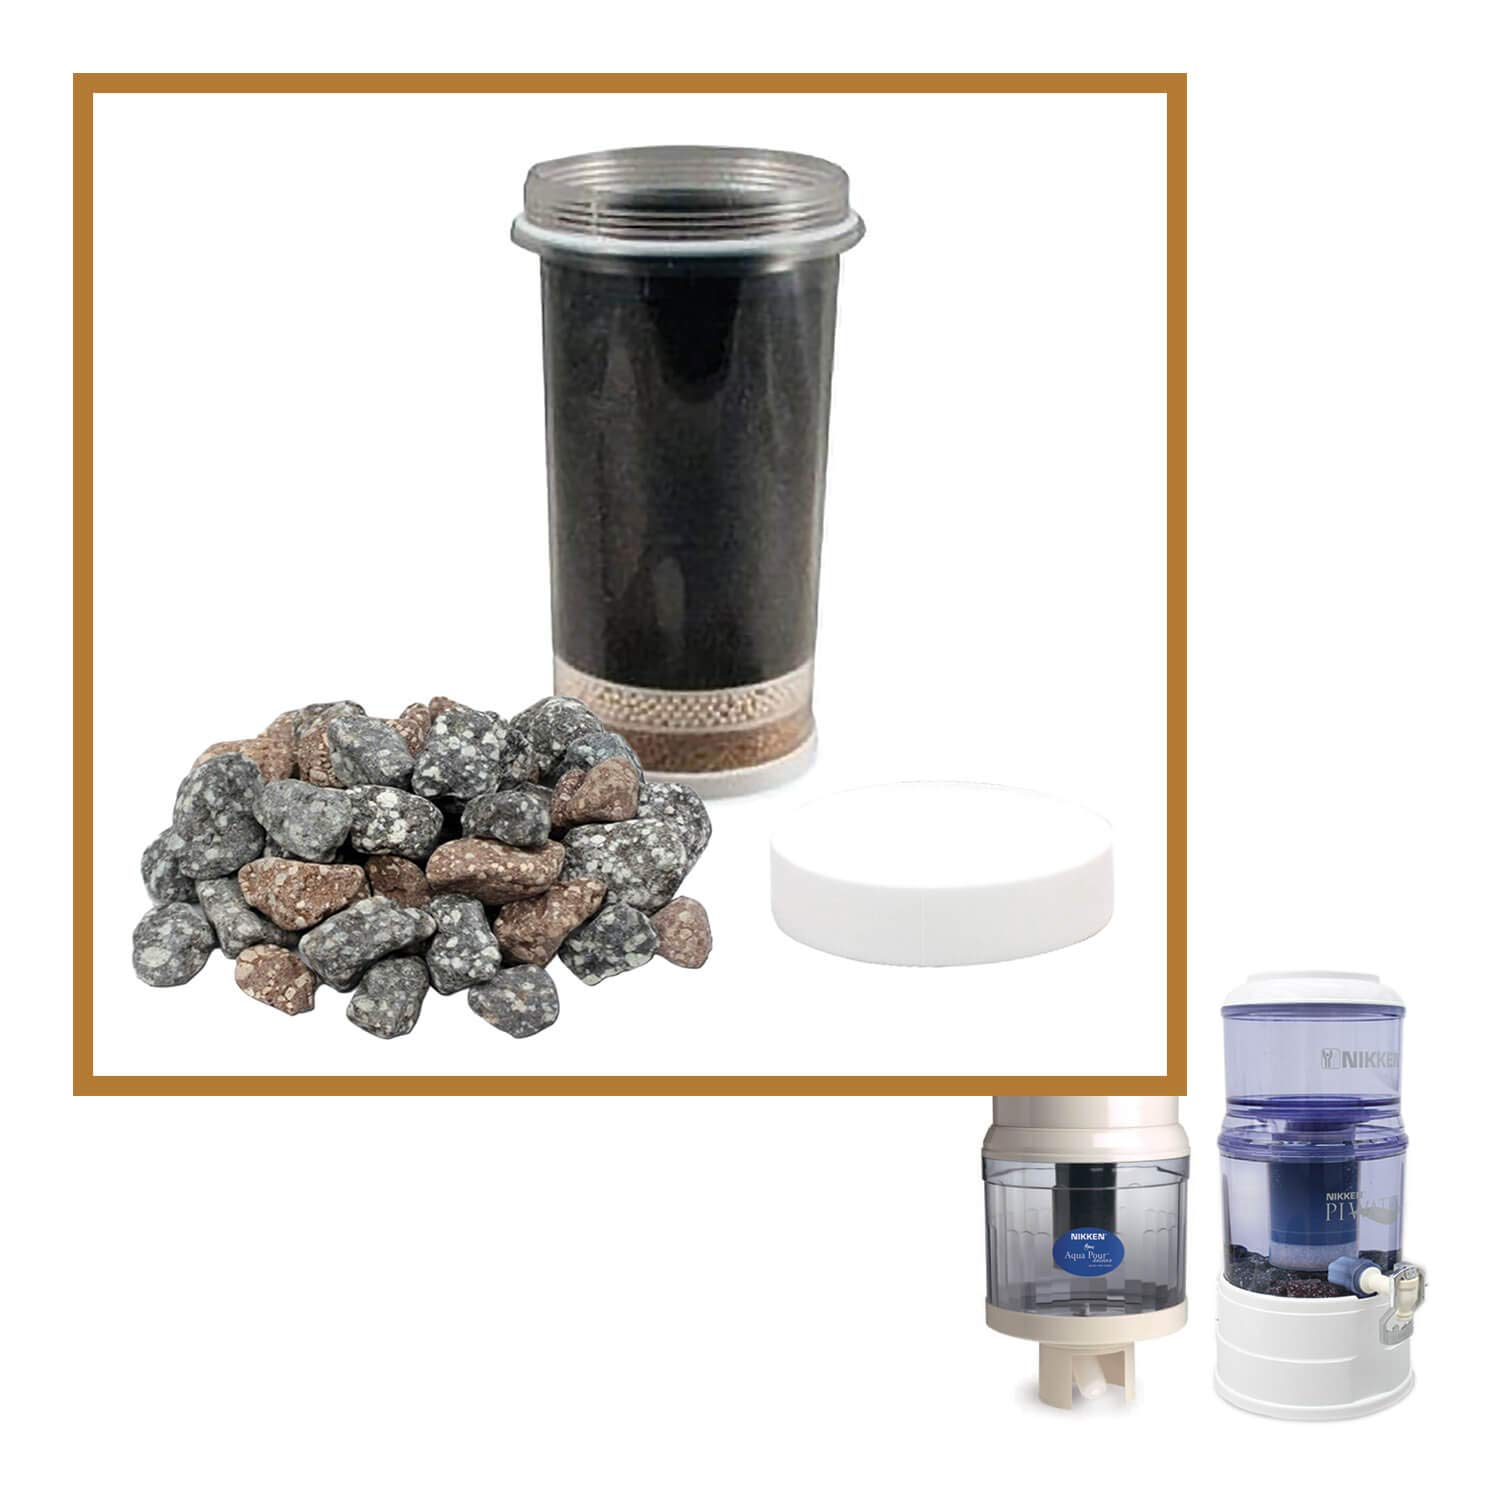 Nikken Aqua Pour 1 Filter Cartridge (1361) and 1 Micro Sponge Pre-Filter (1362) and 1 Mineral Stones (1386) - Advance Replacement for Gravity Water Filter Purifier System (1360) - PiMag Water System by Nikken